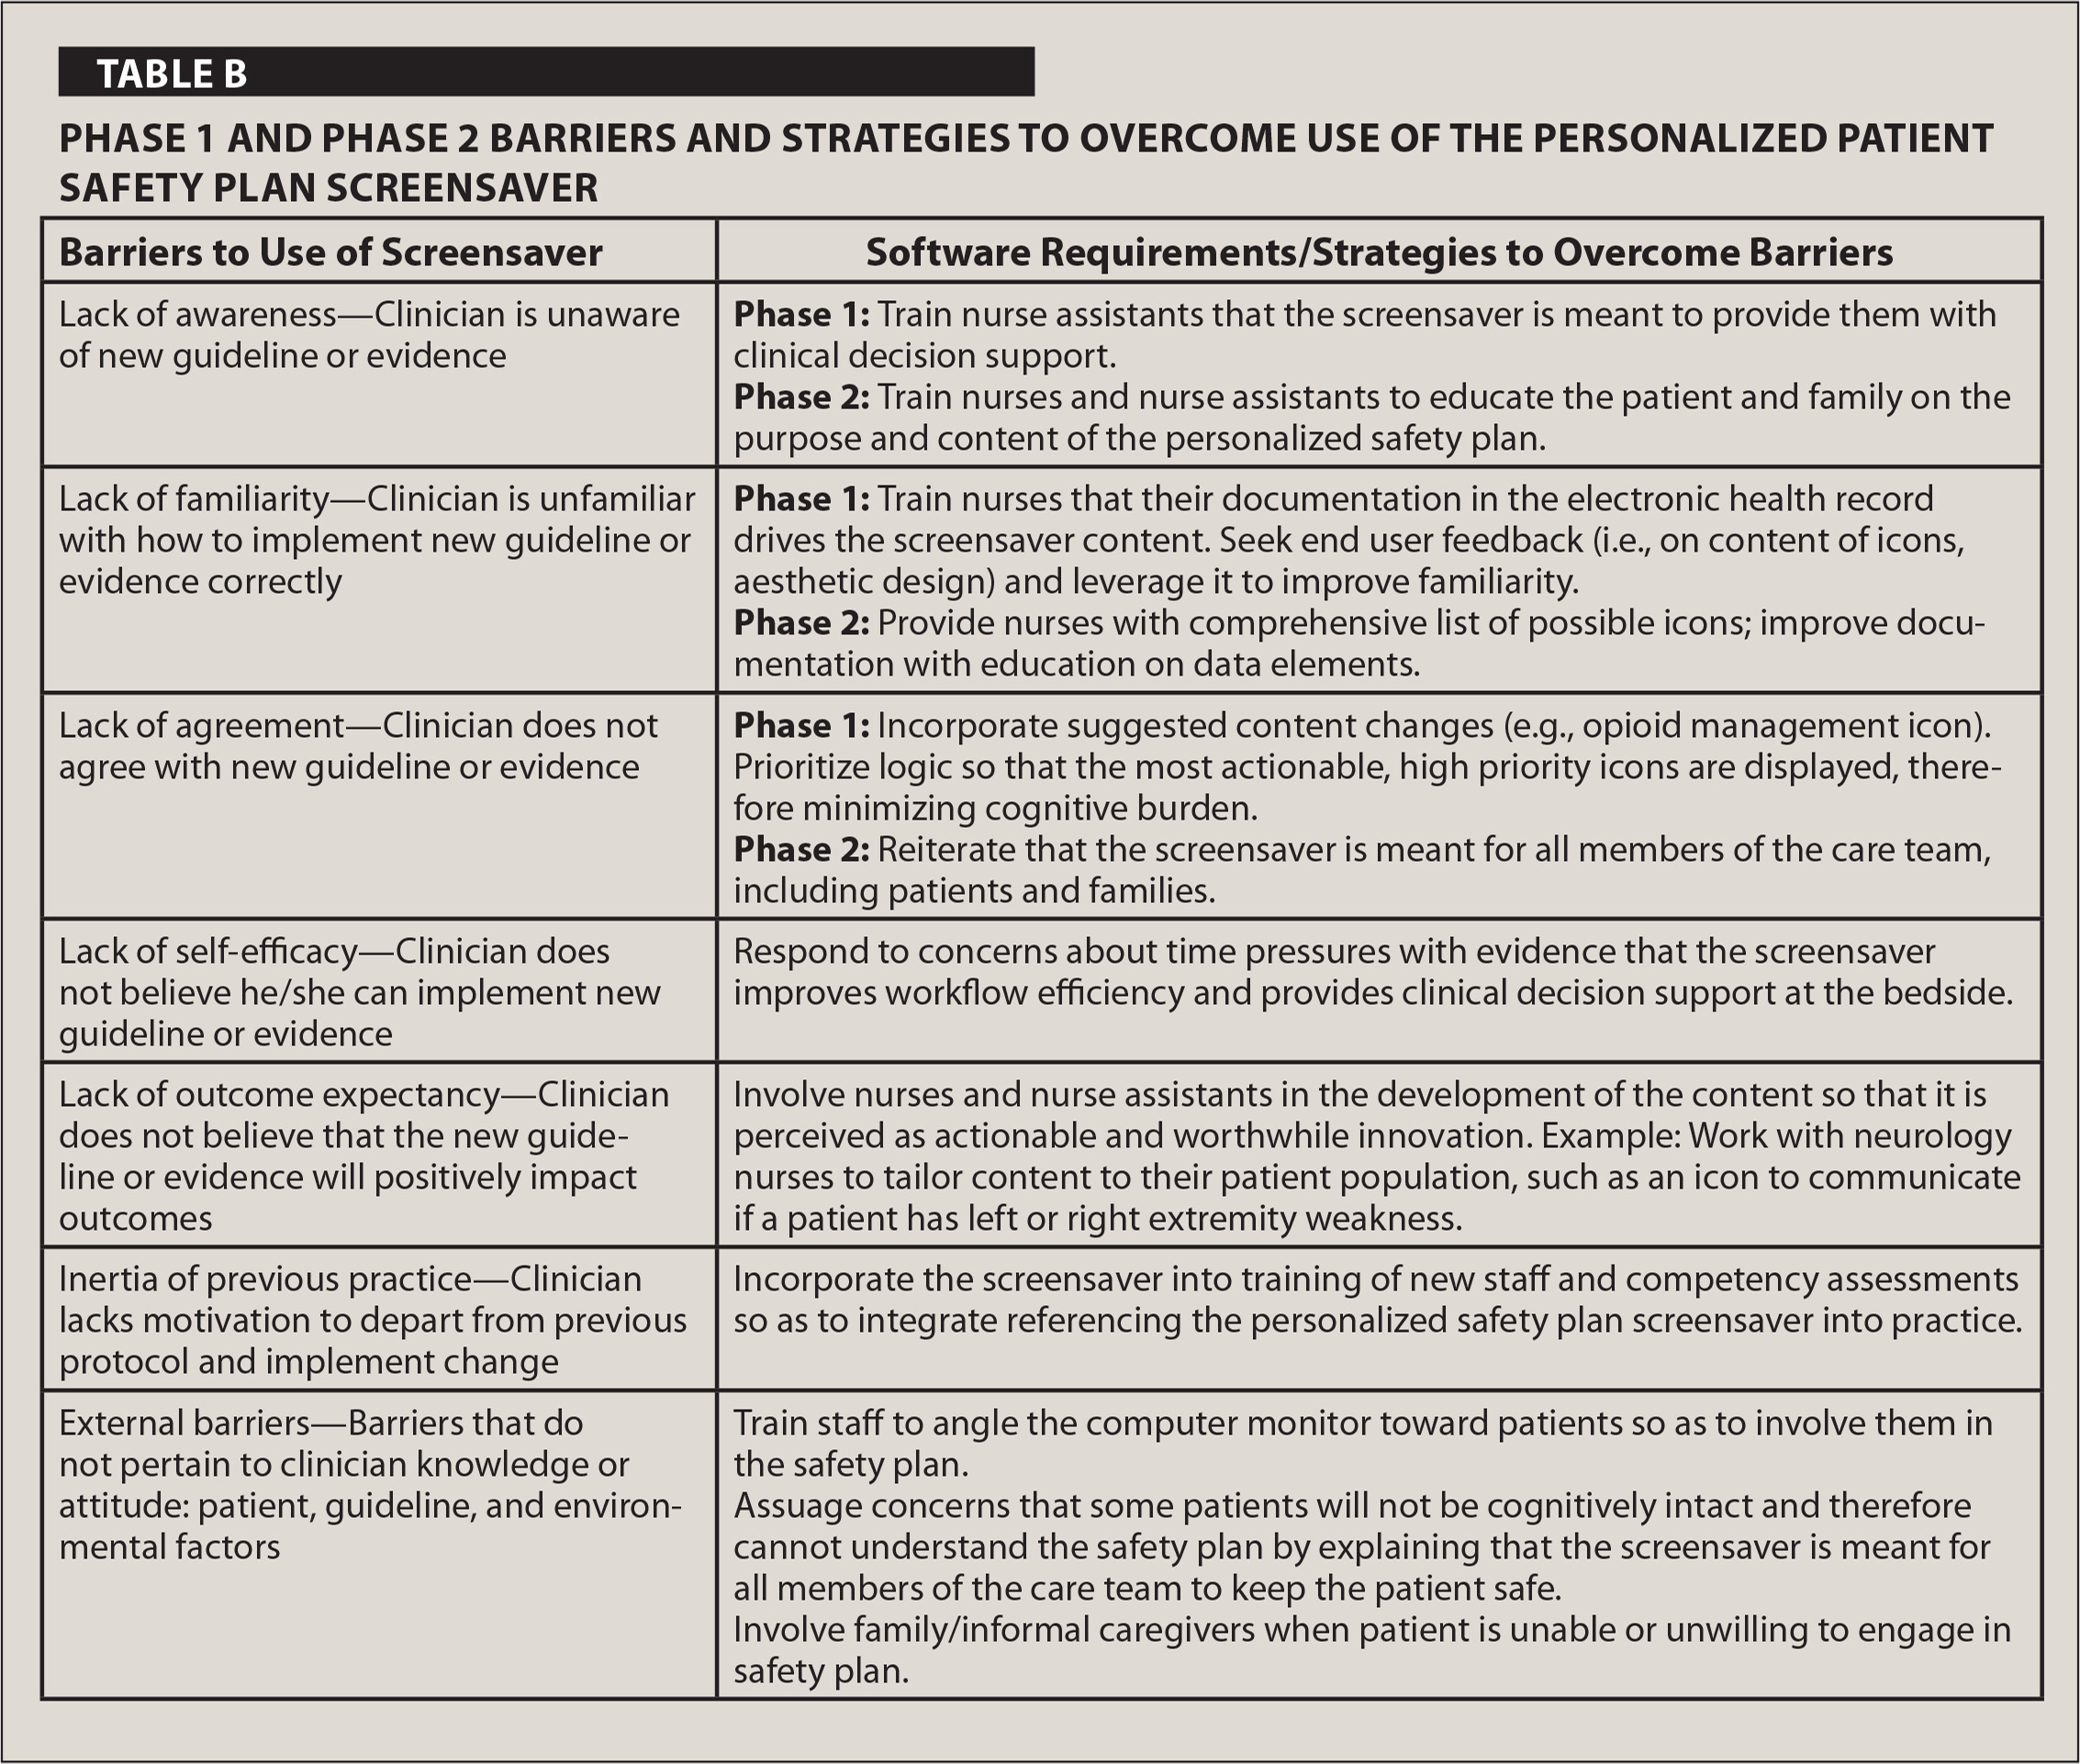 Phase 1 and Phase 2 Barriers and Strategies to Overcome Use of the Personalized Patient Safety Plan Screensaver